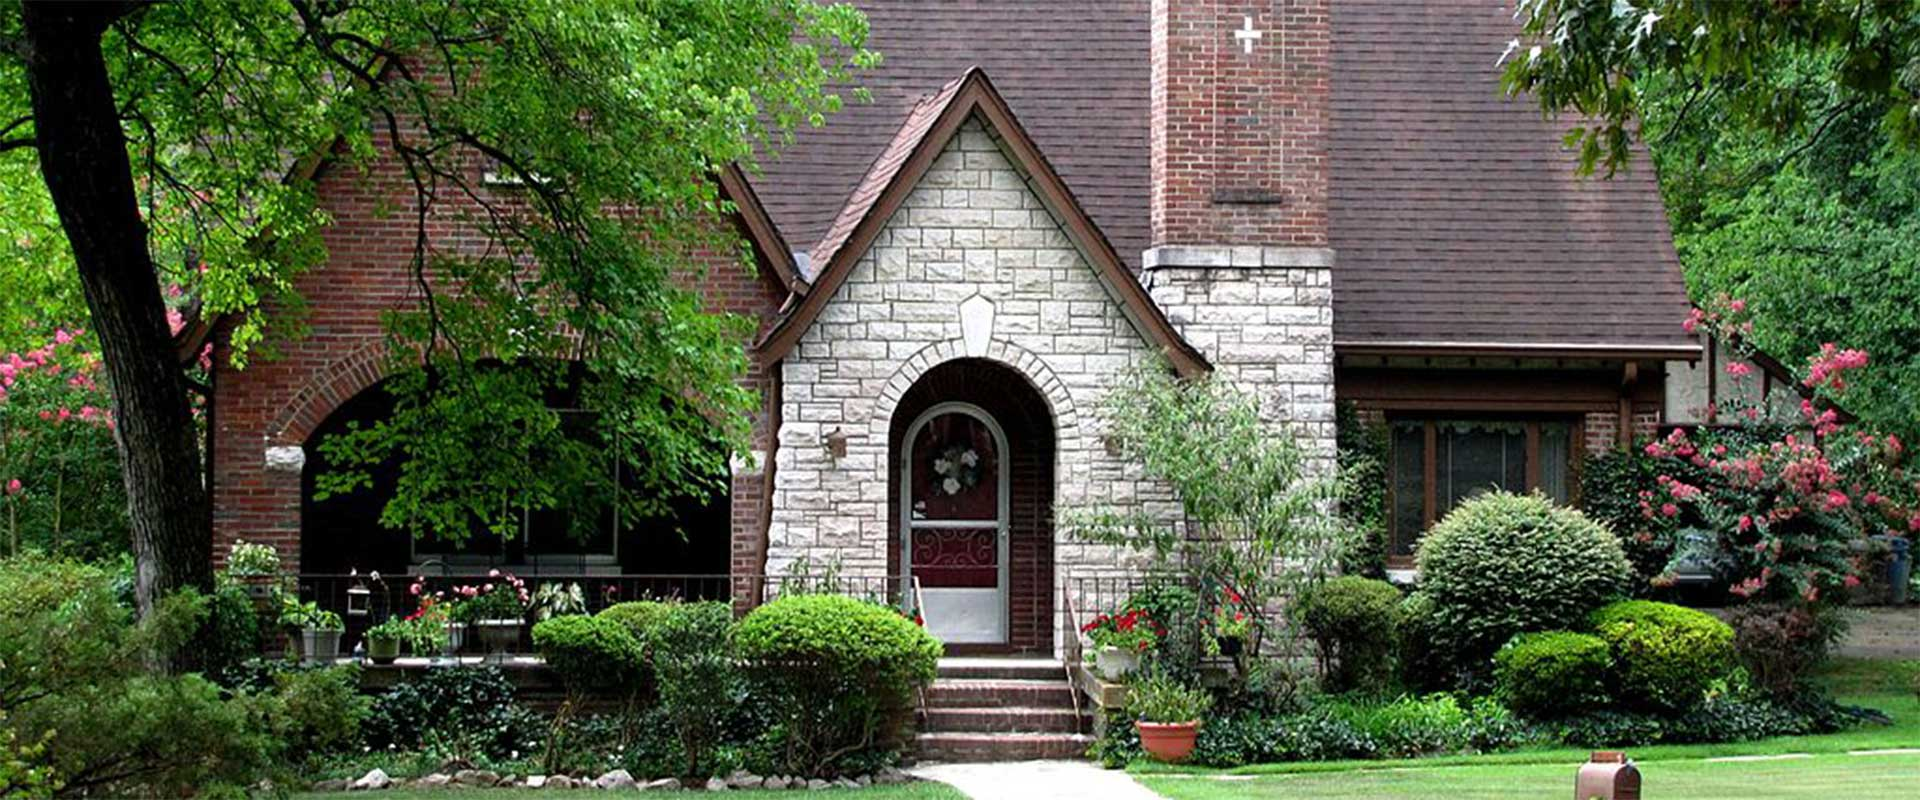 investment properties in knoxville nexus houses